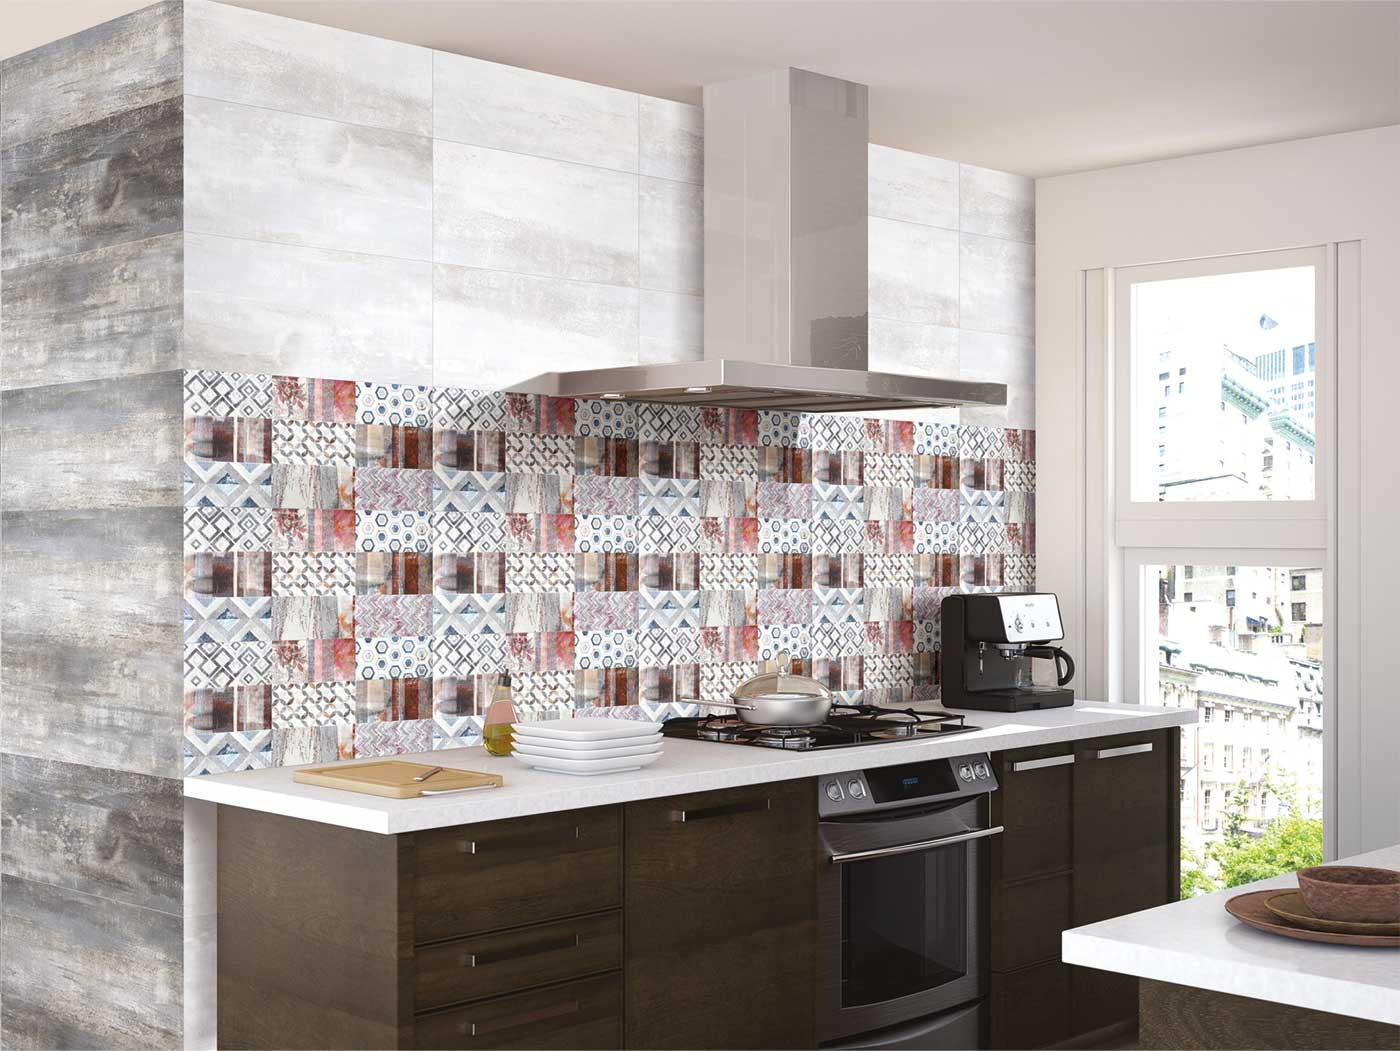 Metallic Kitchen Tiles In India Kajaria Ceramics Limited